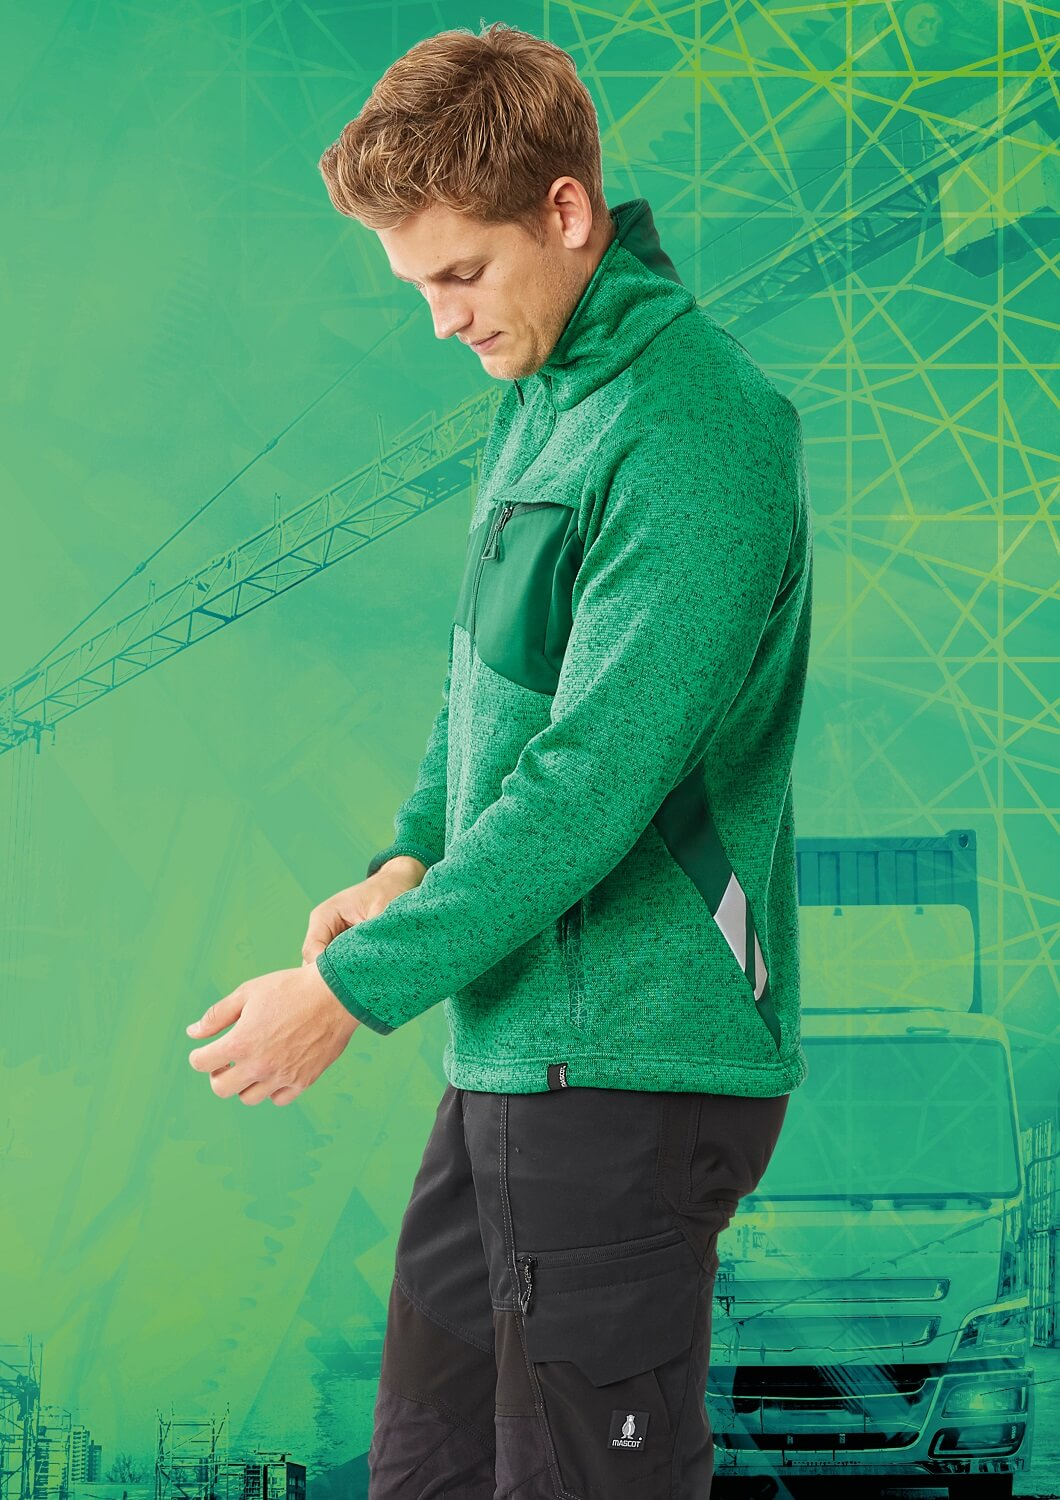 Trousers & Work Jumper - MASCOT® ACCELERATE Brand DNA - Green